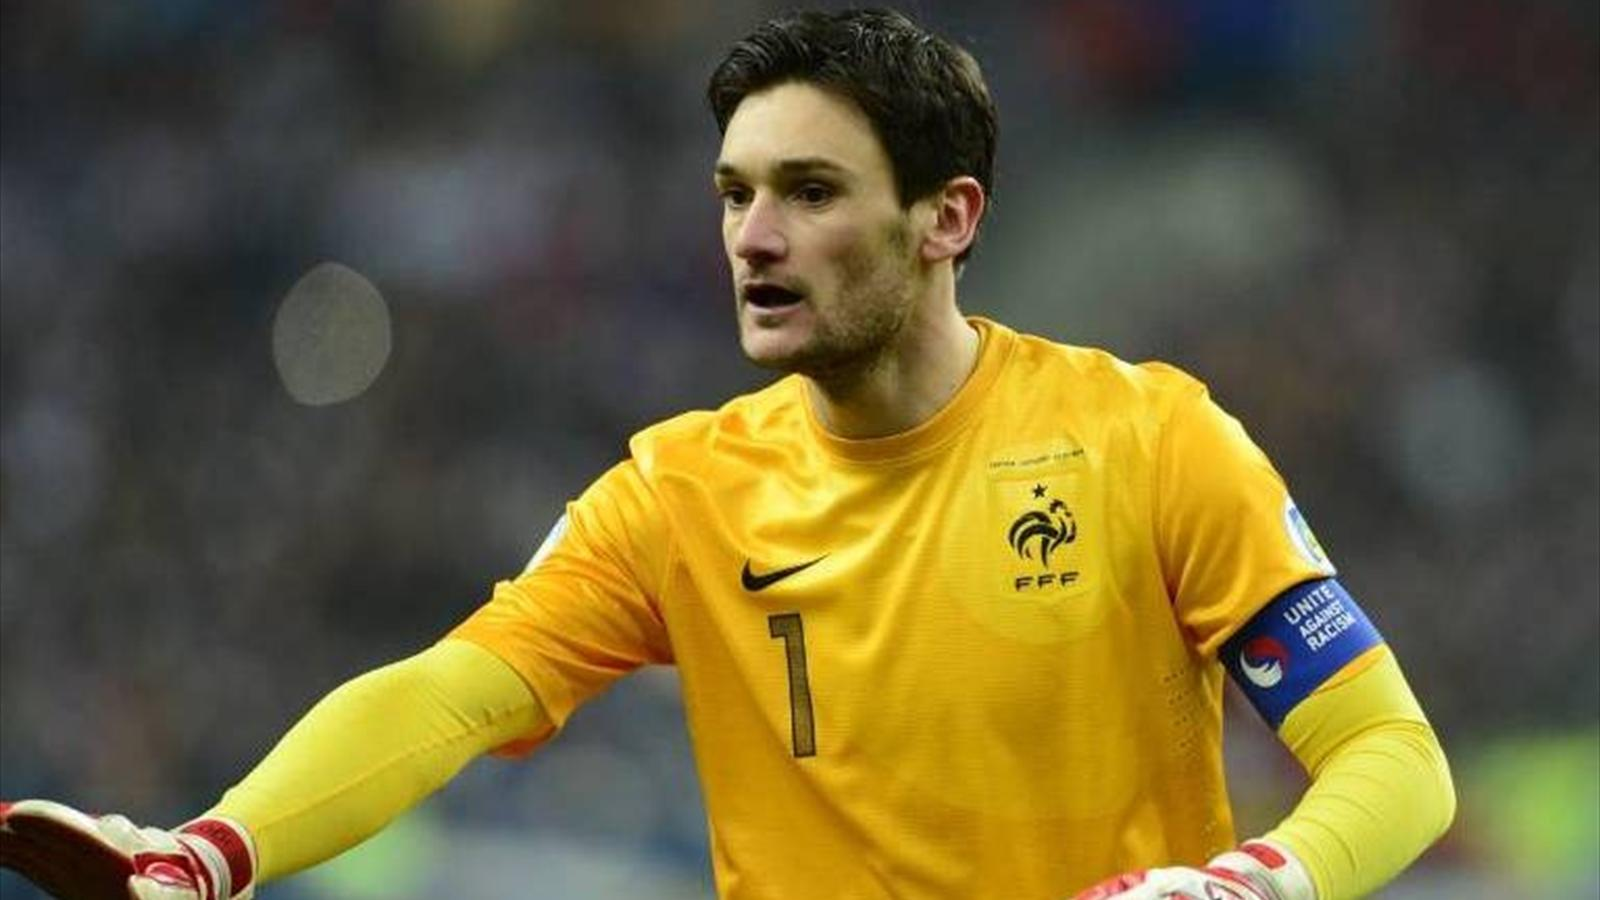 Lloris eviter le portugal qualif coupe du monde - Qualification portugal coupe du monde ...